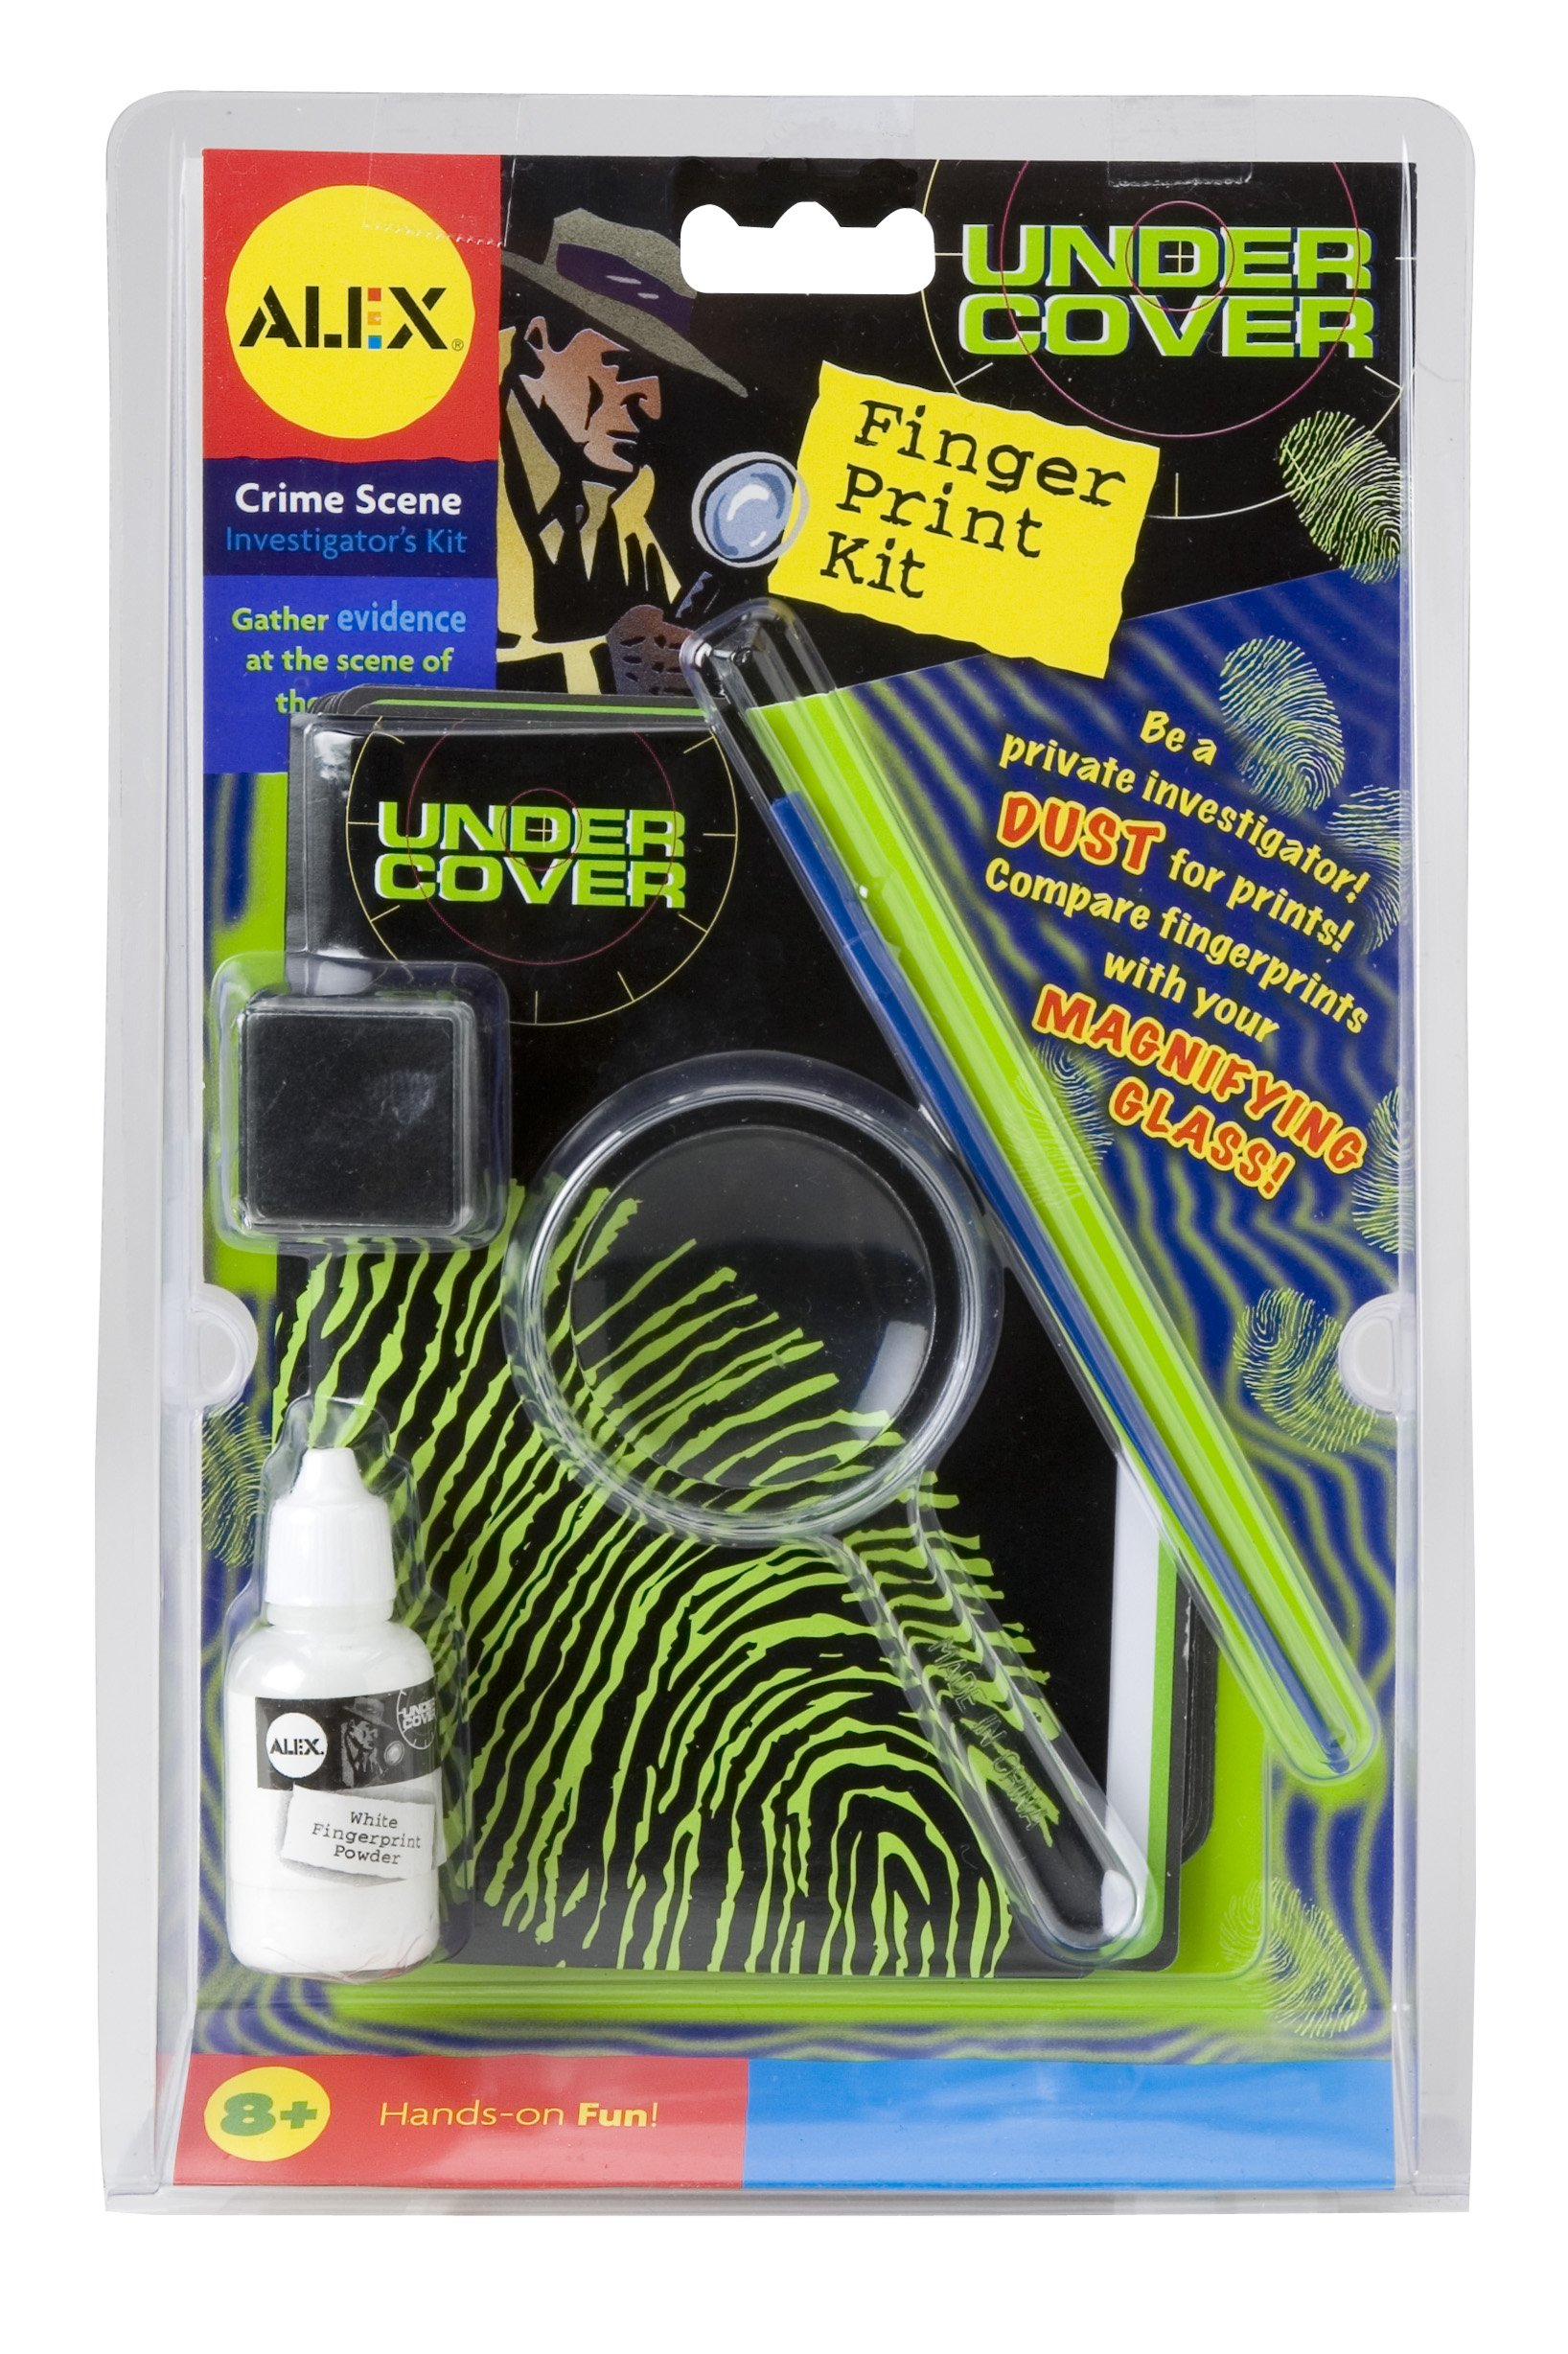 ALEX Toys Fingerprint Kit